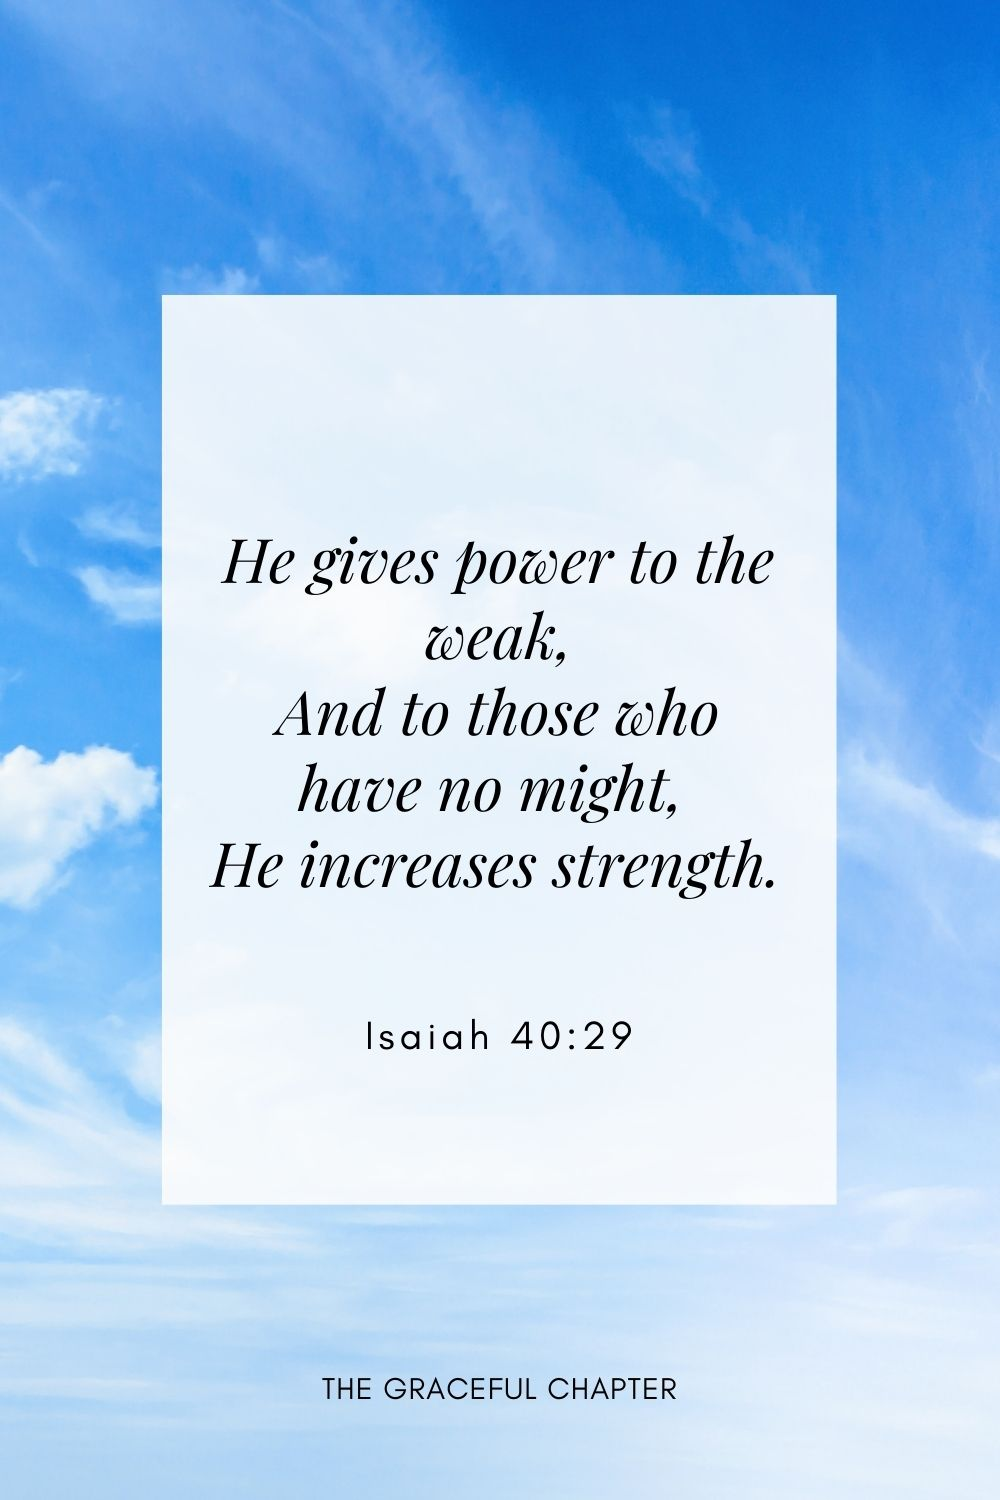 He gives power to the weak, And to those who have no might He increases strength. Isaiah 40:29